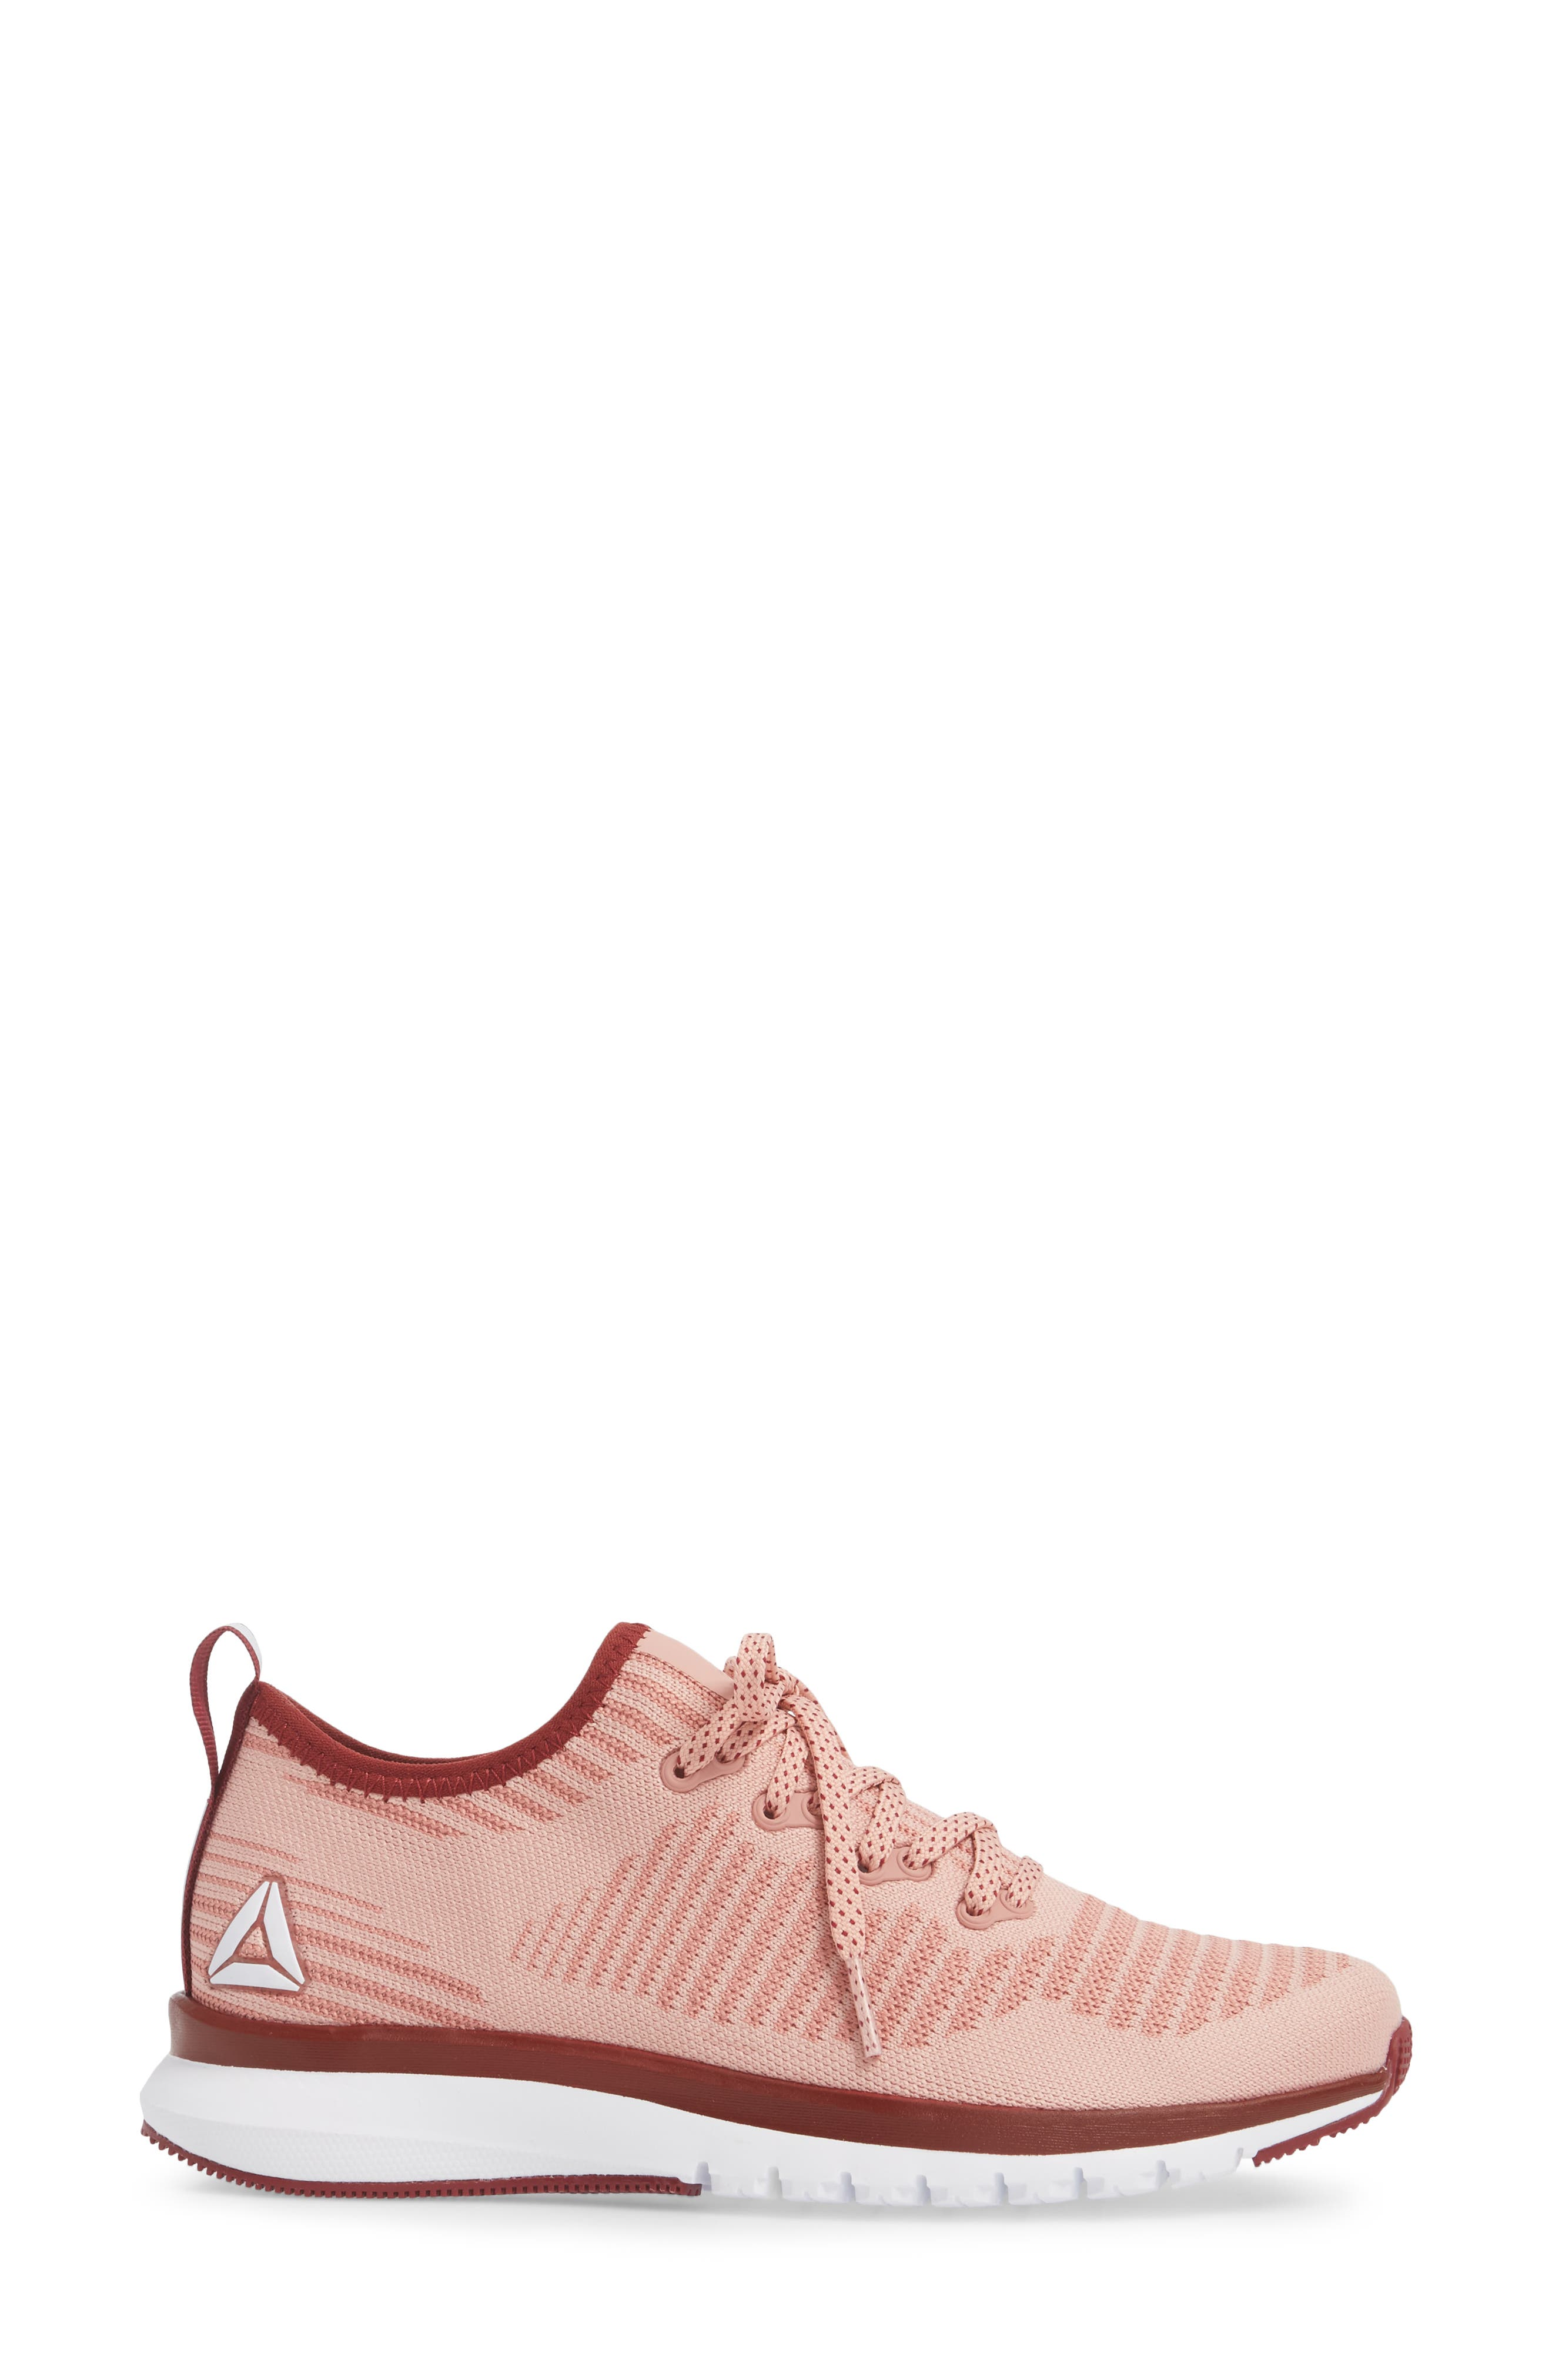 Print Run Smooth Ultra Knit Running Shoe,                             Alternate thumbnail 3, color,                             Chalk Pink/ Urban Maroon